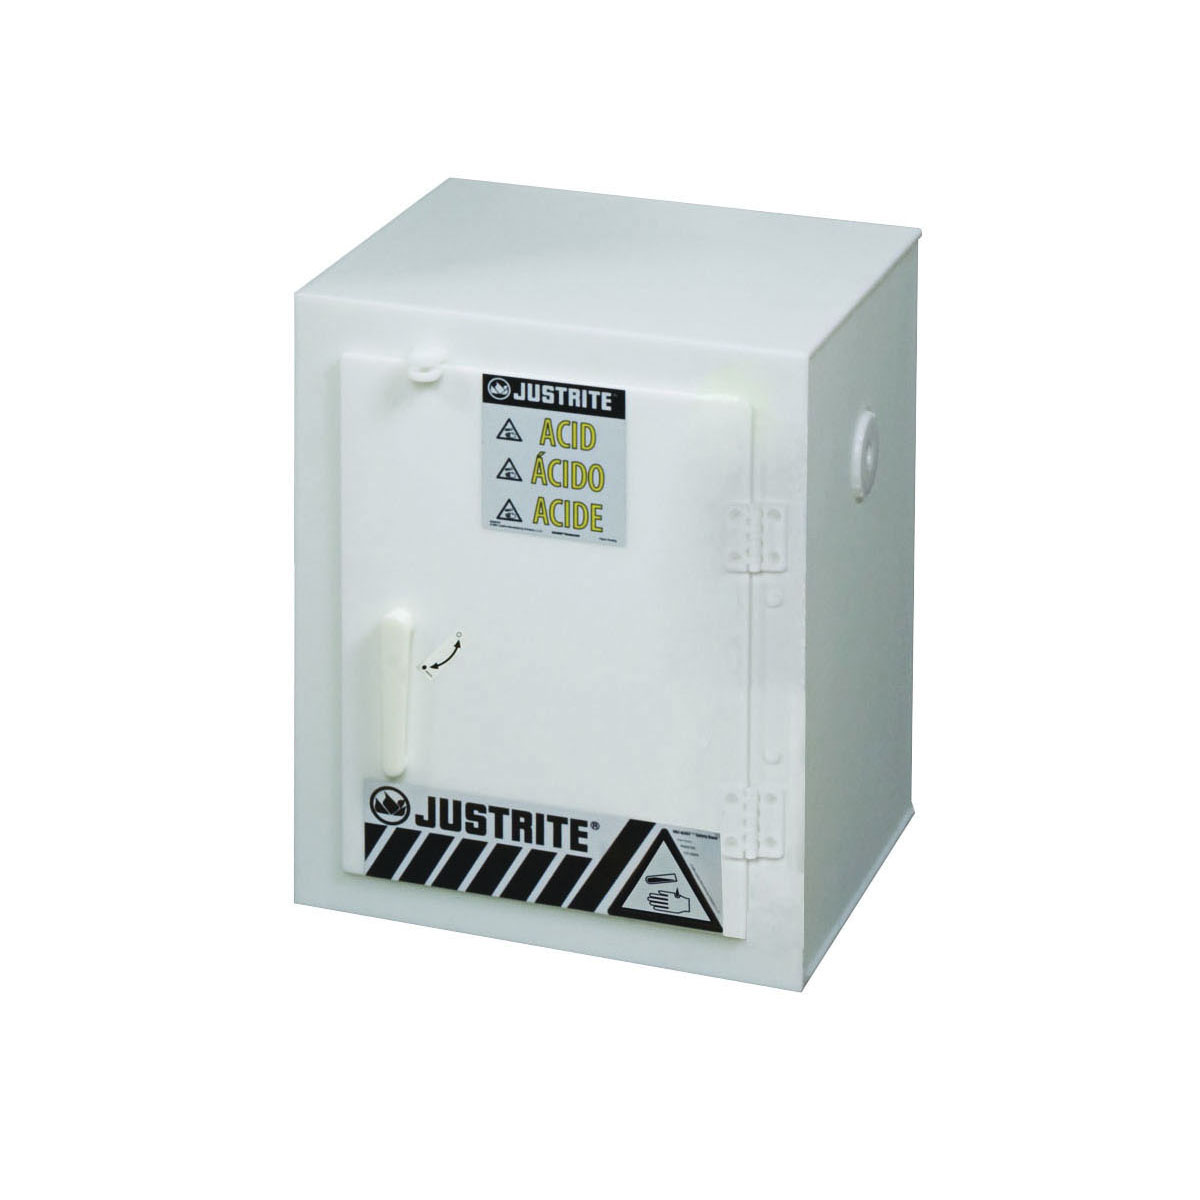 Justrite® 24004 Countertop Corrosive Safety Cabinet, (6) 2.5 L Bottle Capacity, 22 in H x 17 in W x 17 in D, Manual Close Door, 1 Doors, Polyethylene, White